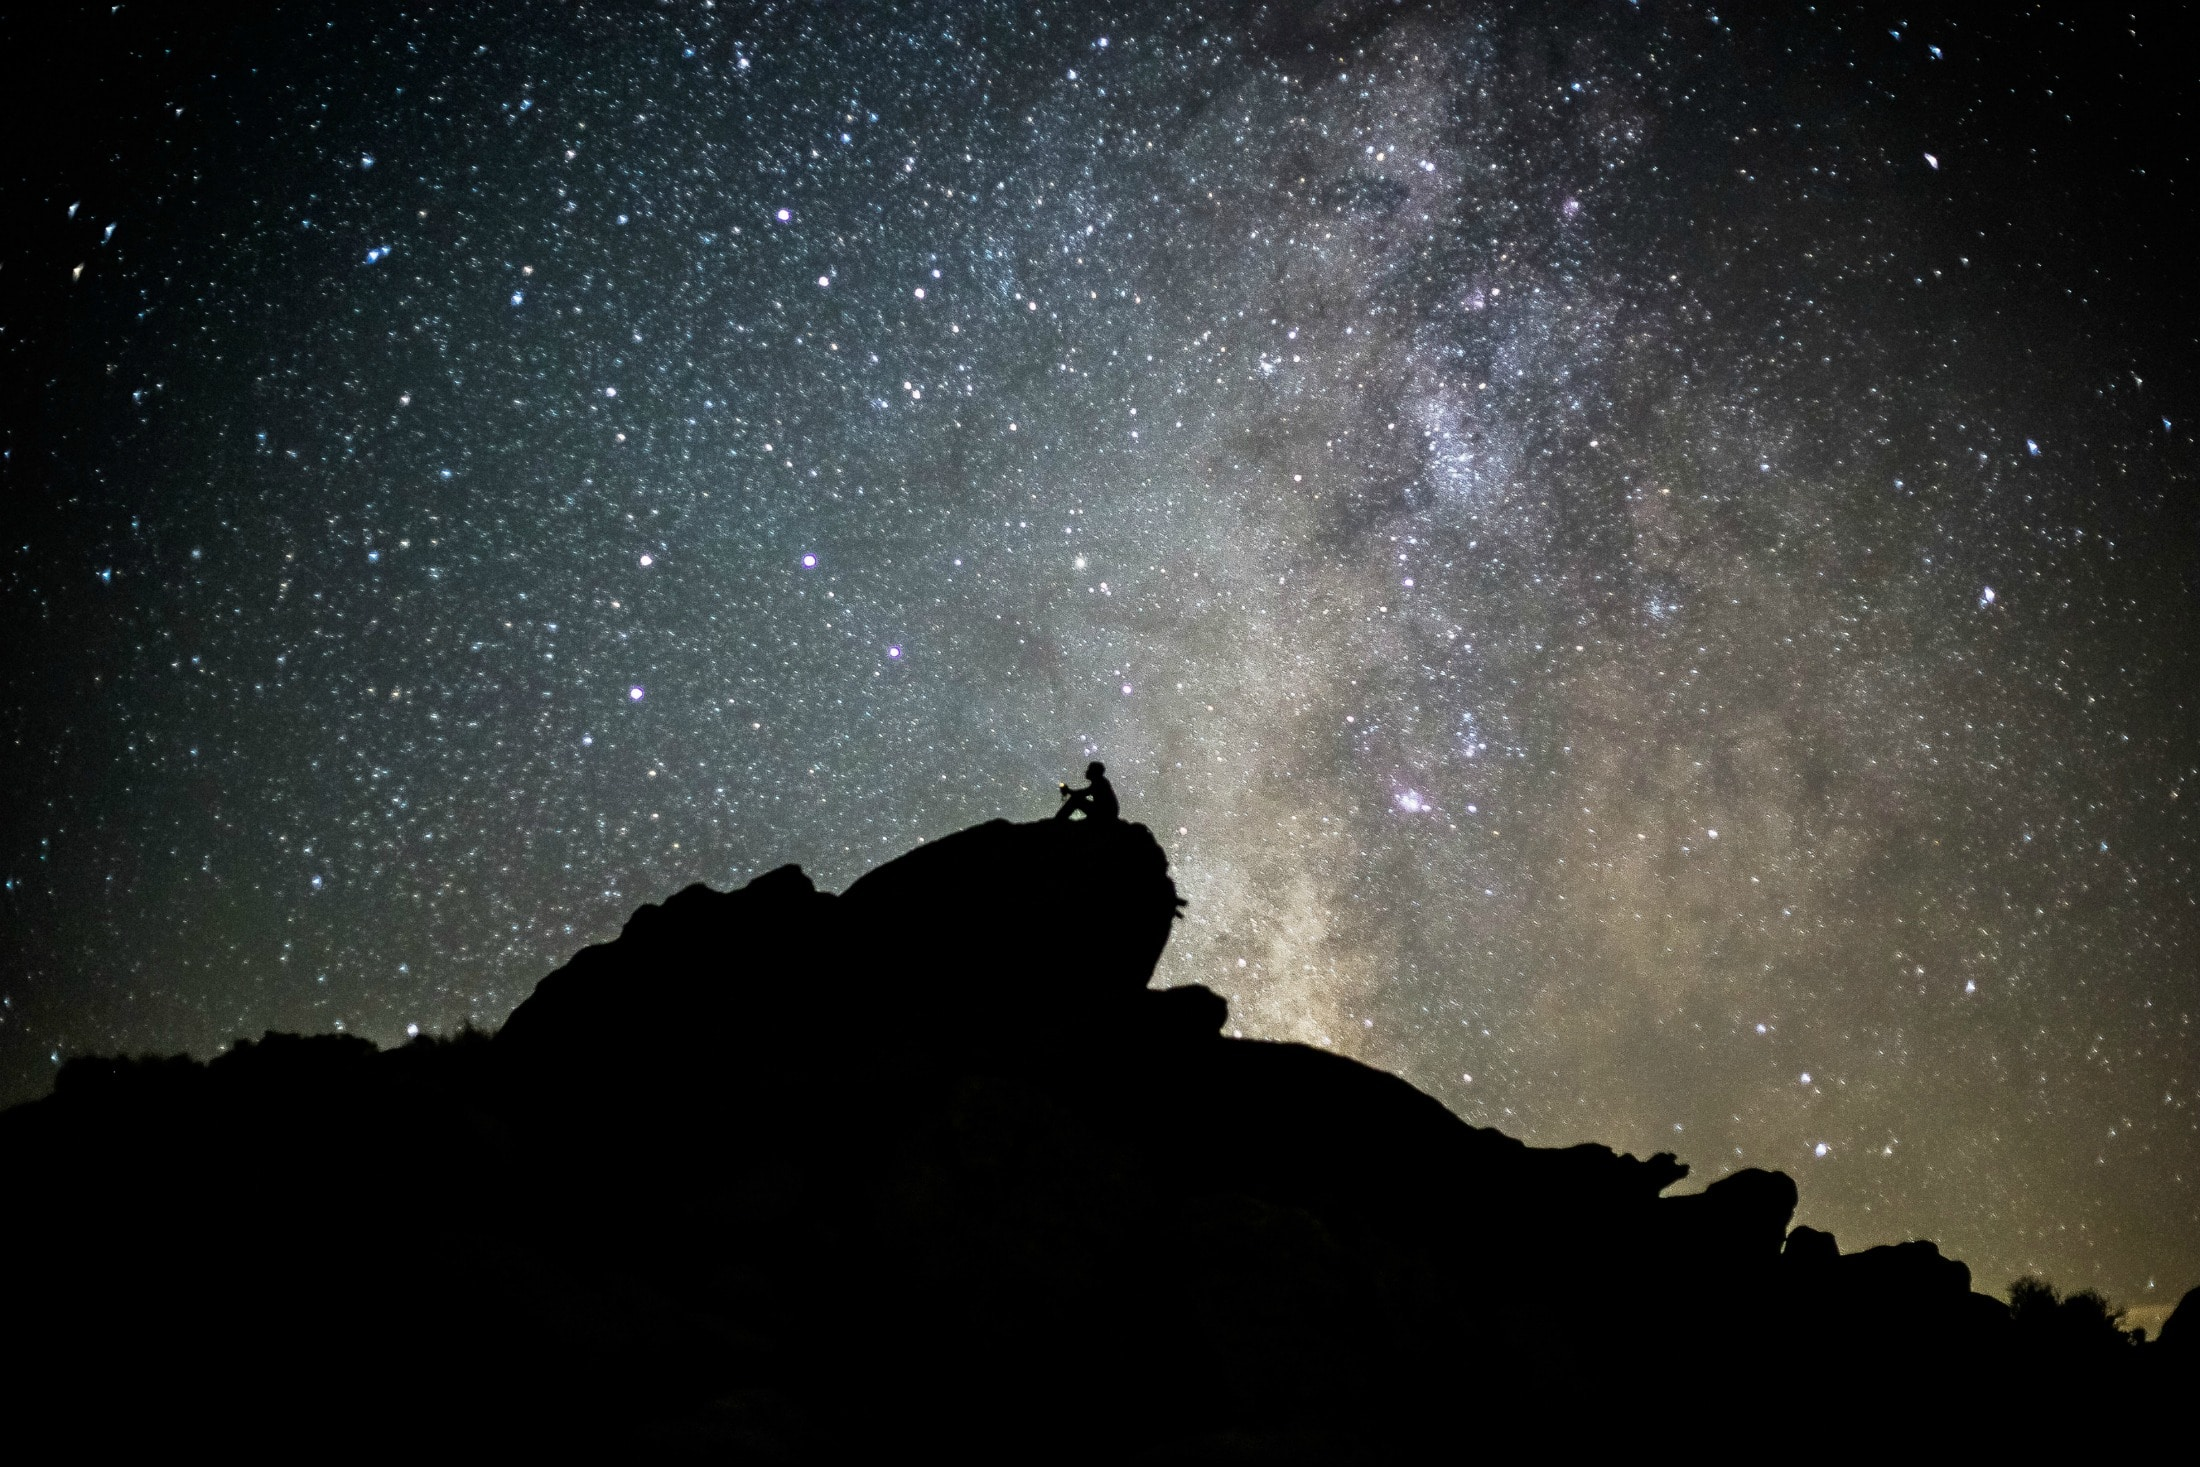 A man sits on a rock under stars — stargazing is one of the very popular things to do at Anza-Borrego Desert State Park